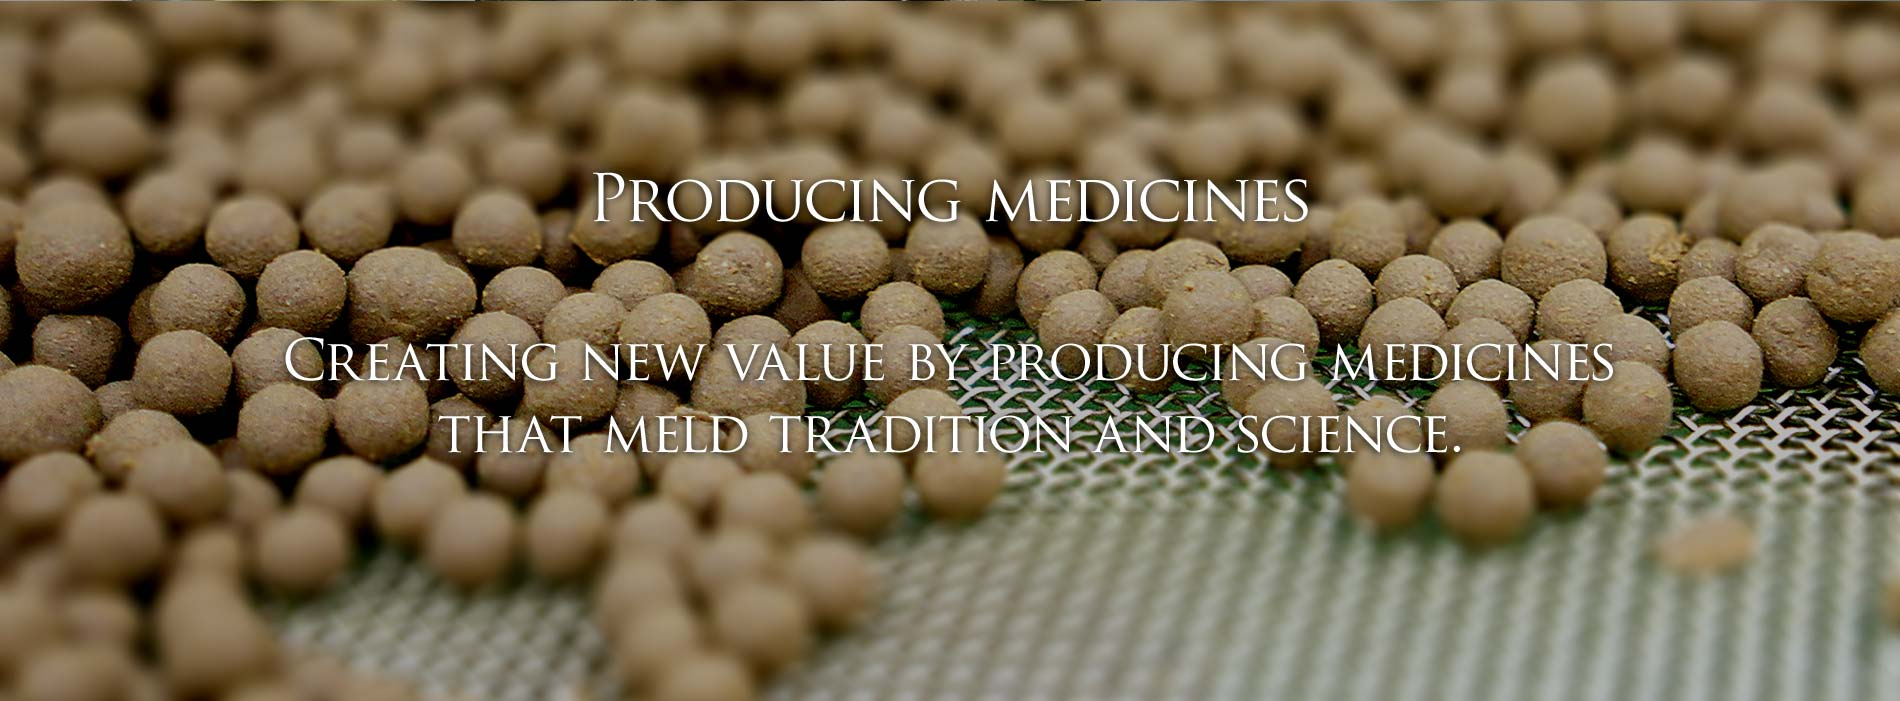 Producing medicines / Creating new value by producing medicines that meld tradition and science.